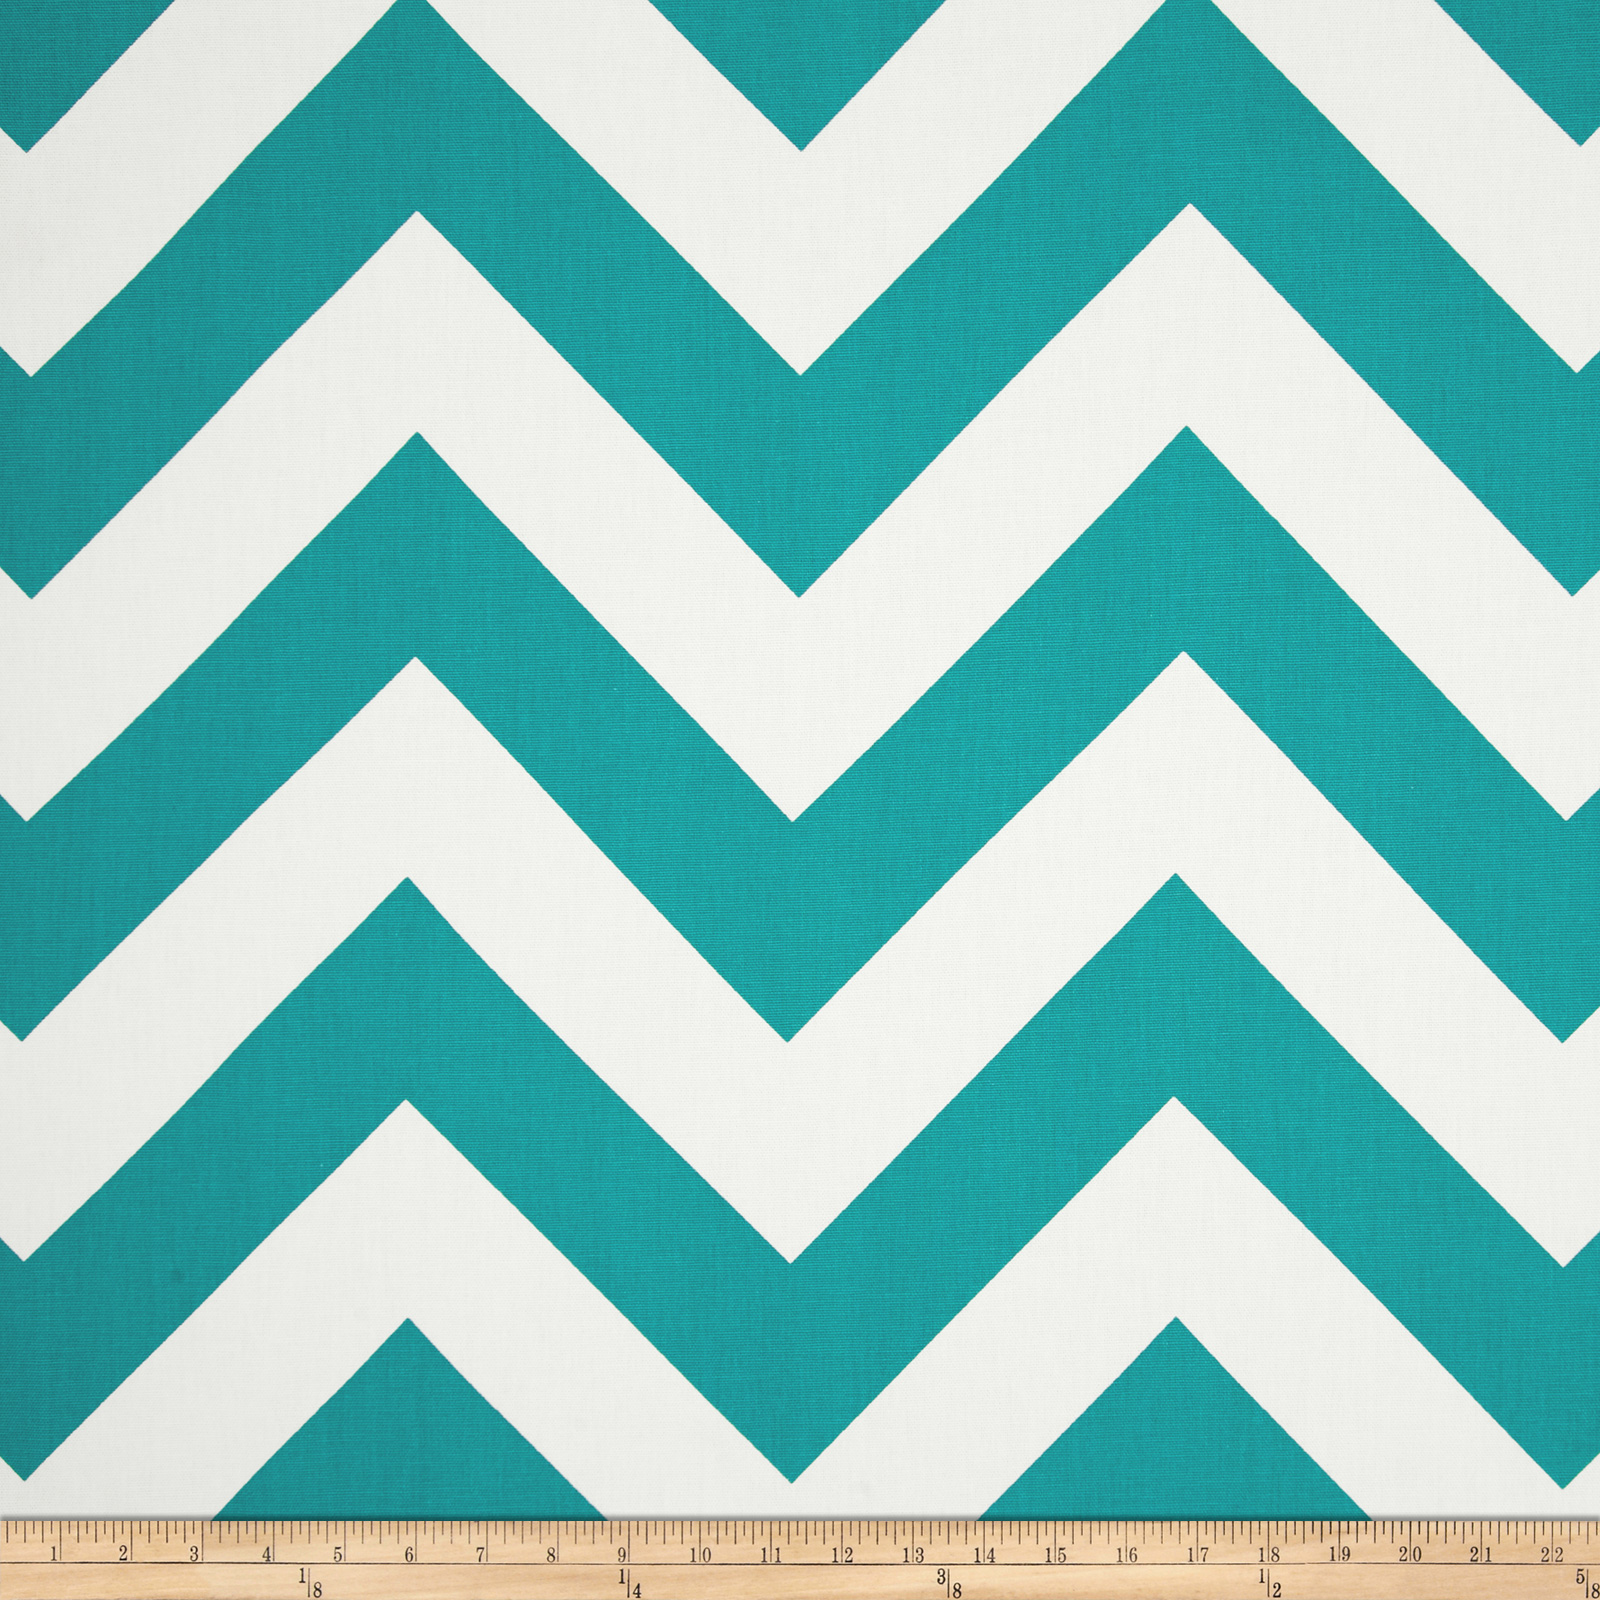 Premier Prints Zippy True Turquoise Fabric